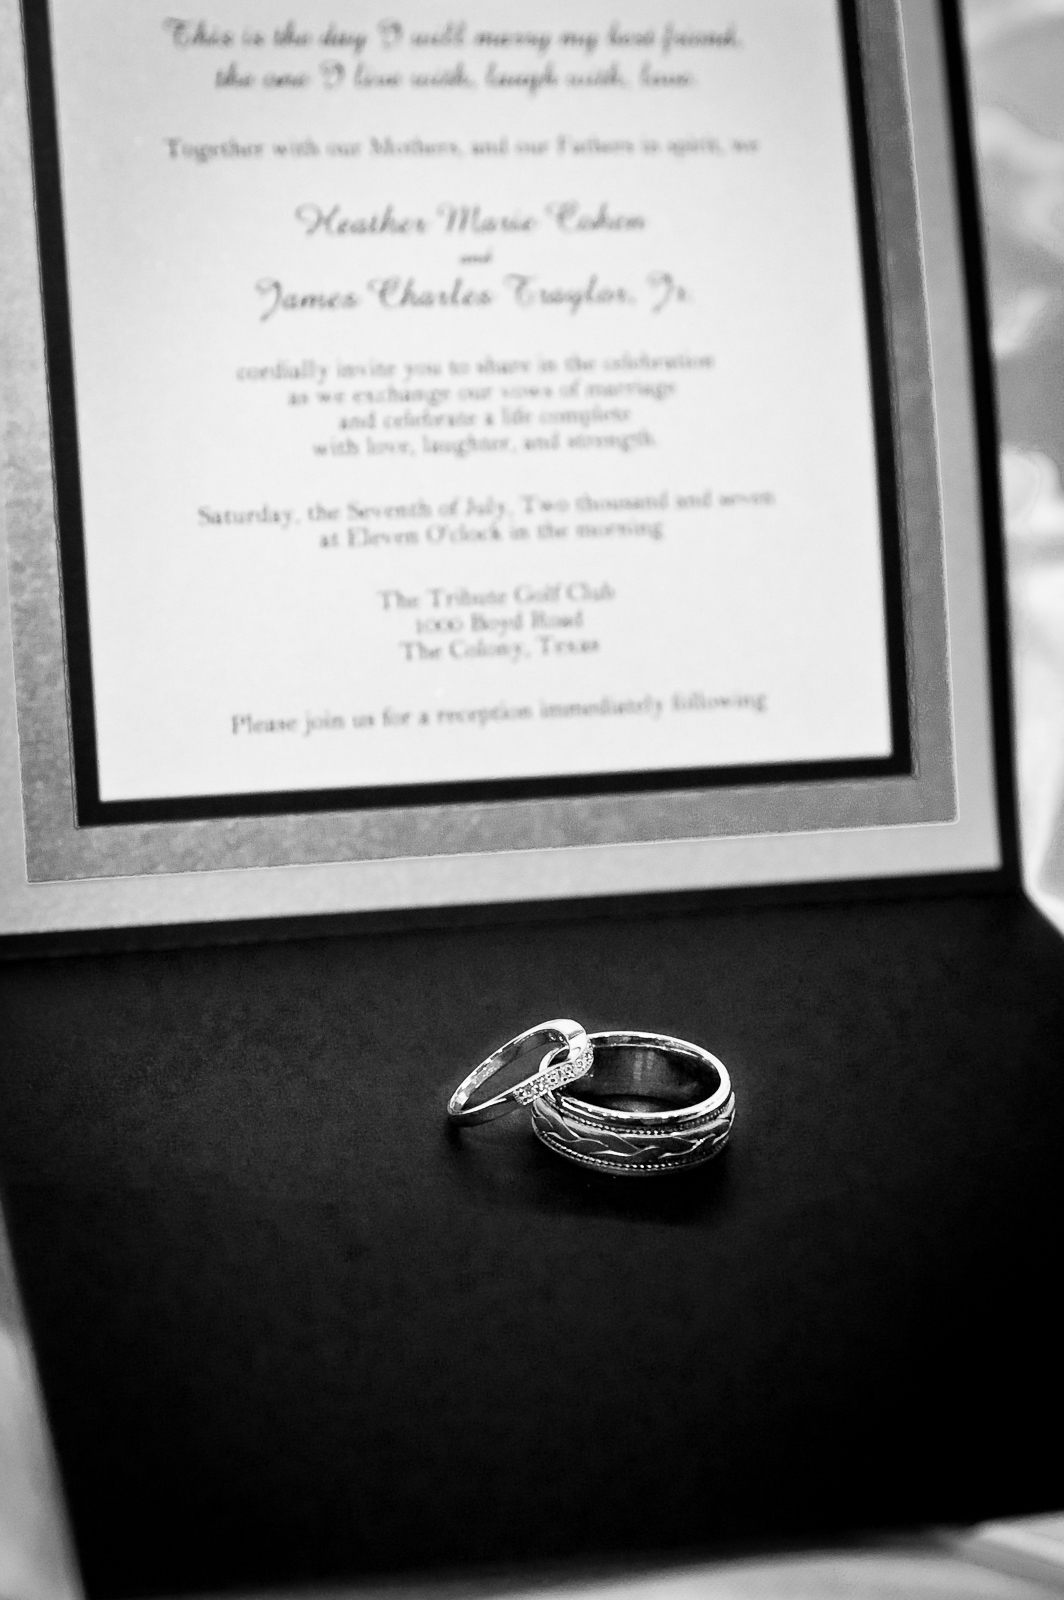 Michael-Napier-Weddings-Traylor-Cohen-Wedding-Album- (6).jpg